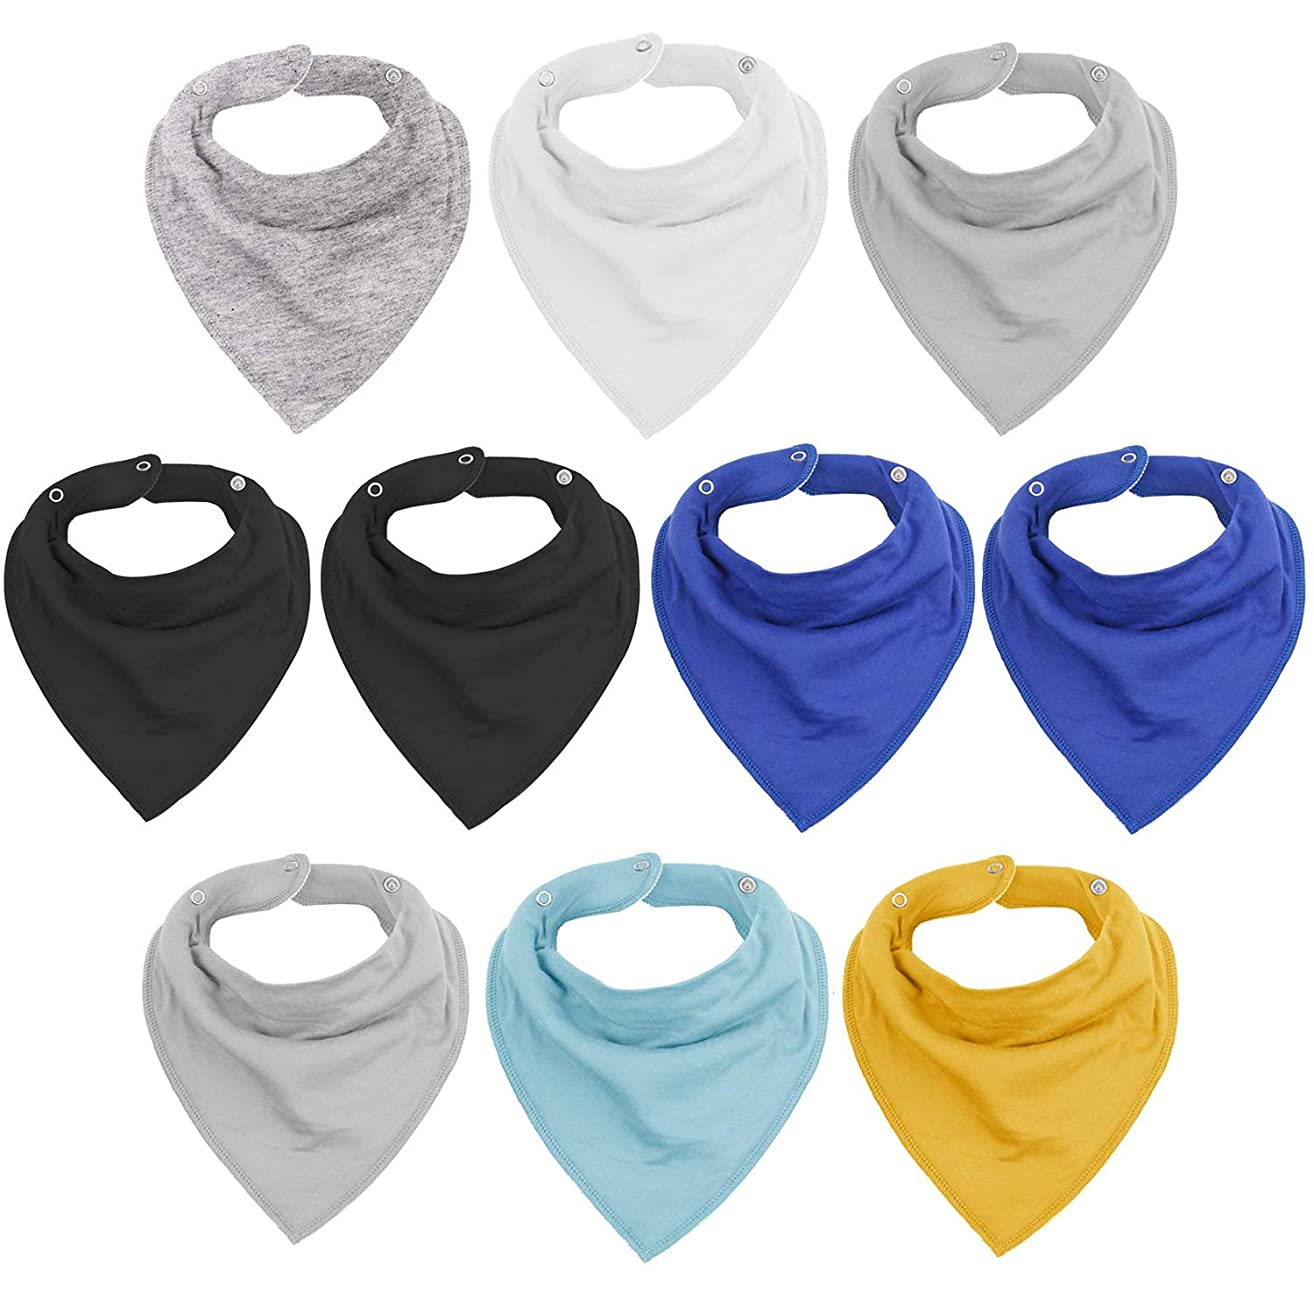 Baby Bandana Drool Bibs for Drooling and Teething 10 Pack Cute Baby Gift for Boys & Girls, Super Soft Absorbent Organic Cotton Toddler Baby Shower Gift Set by Vetoo